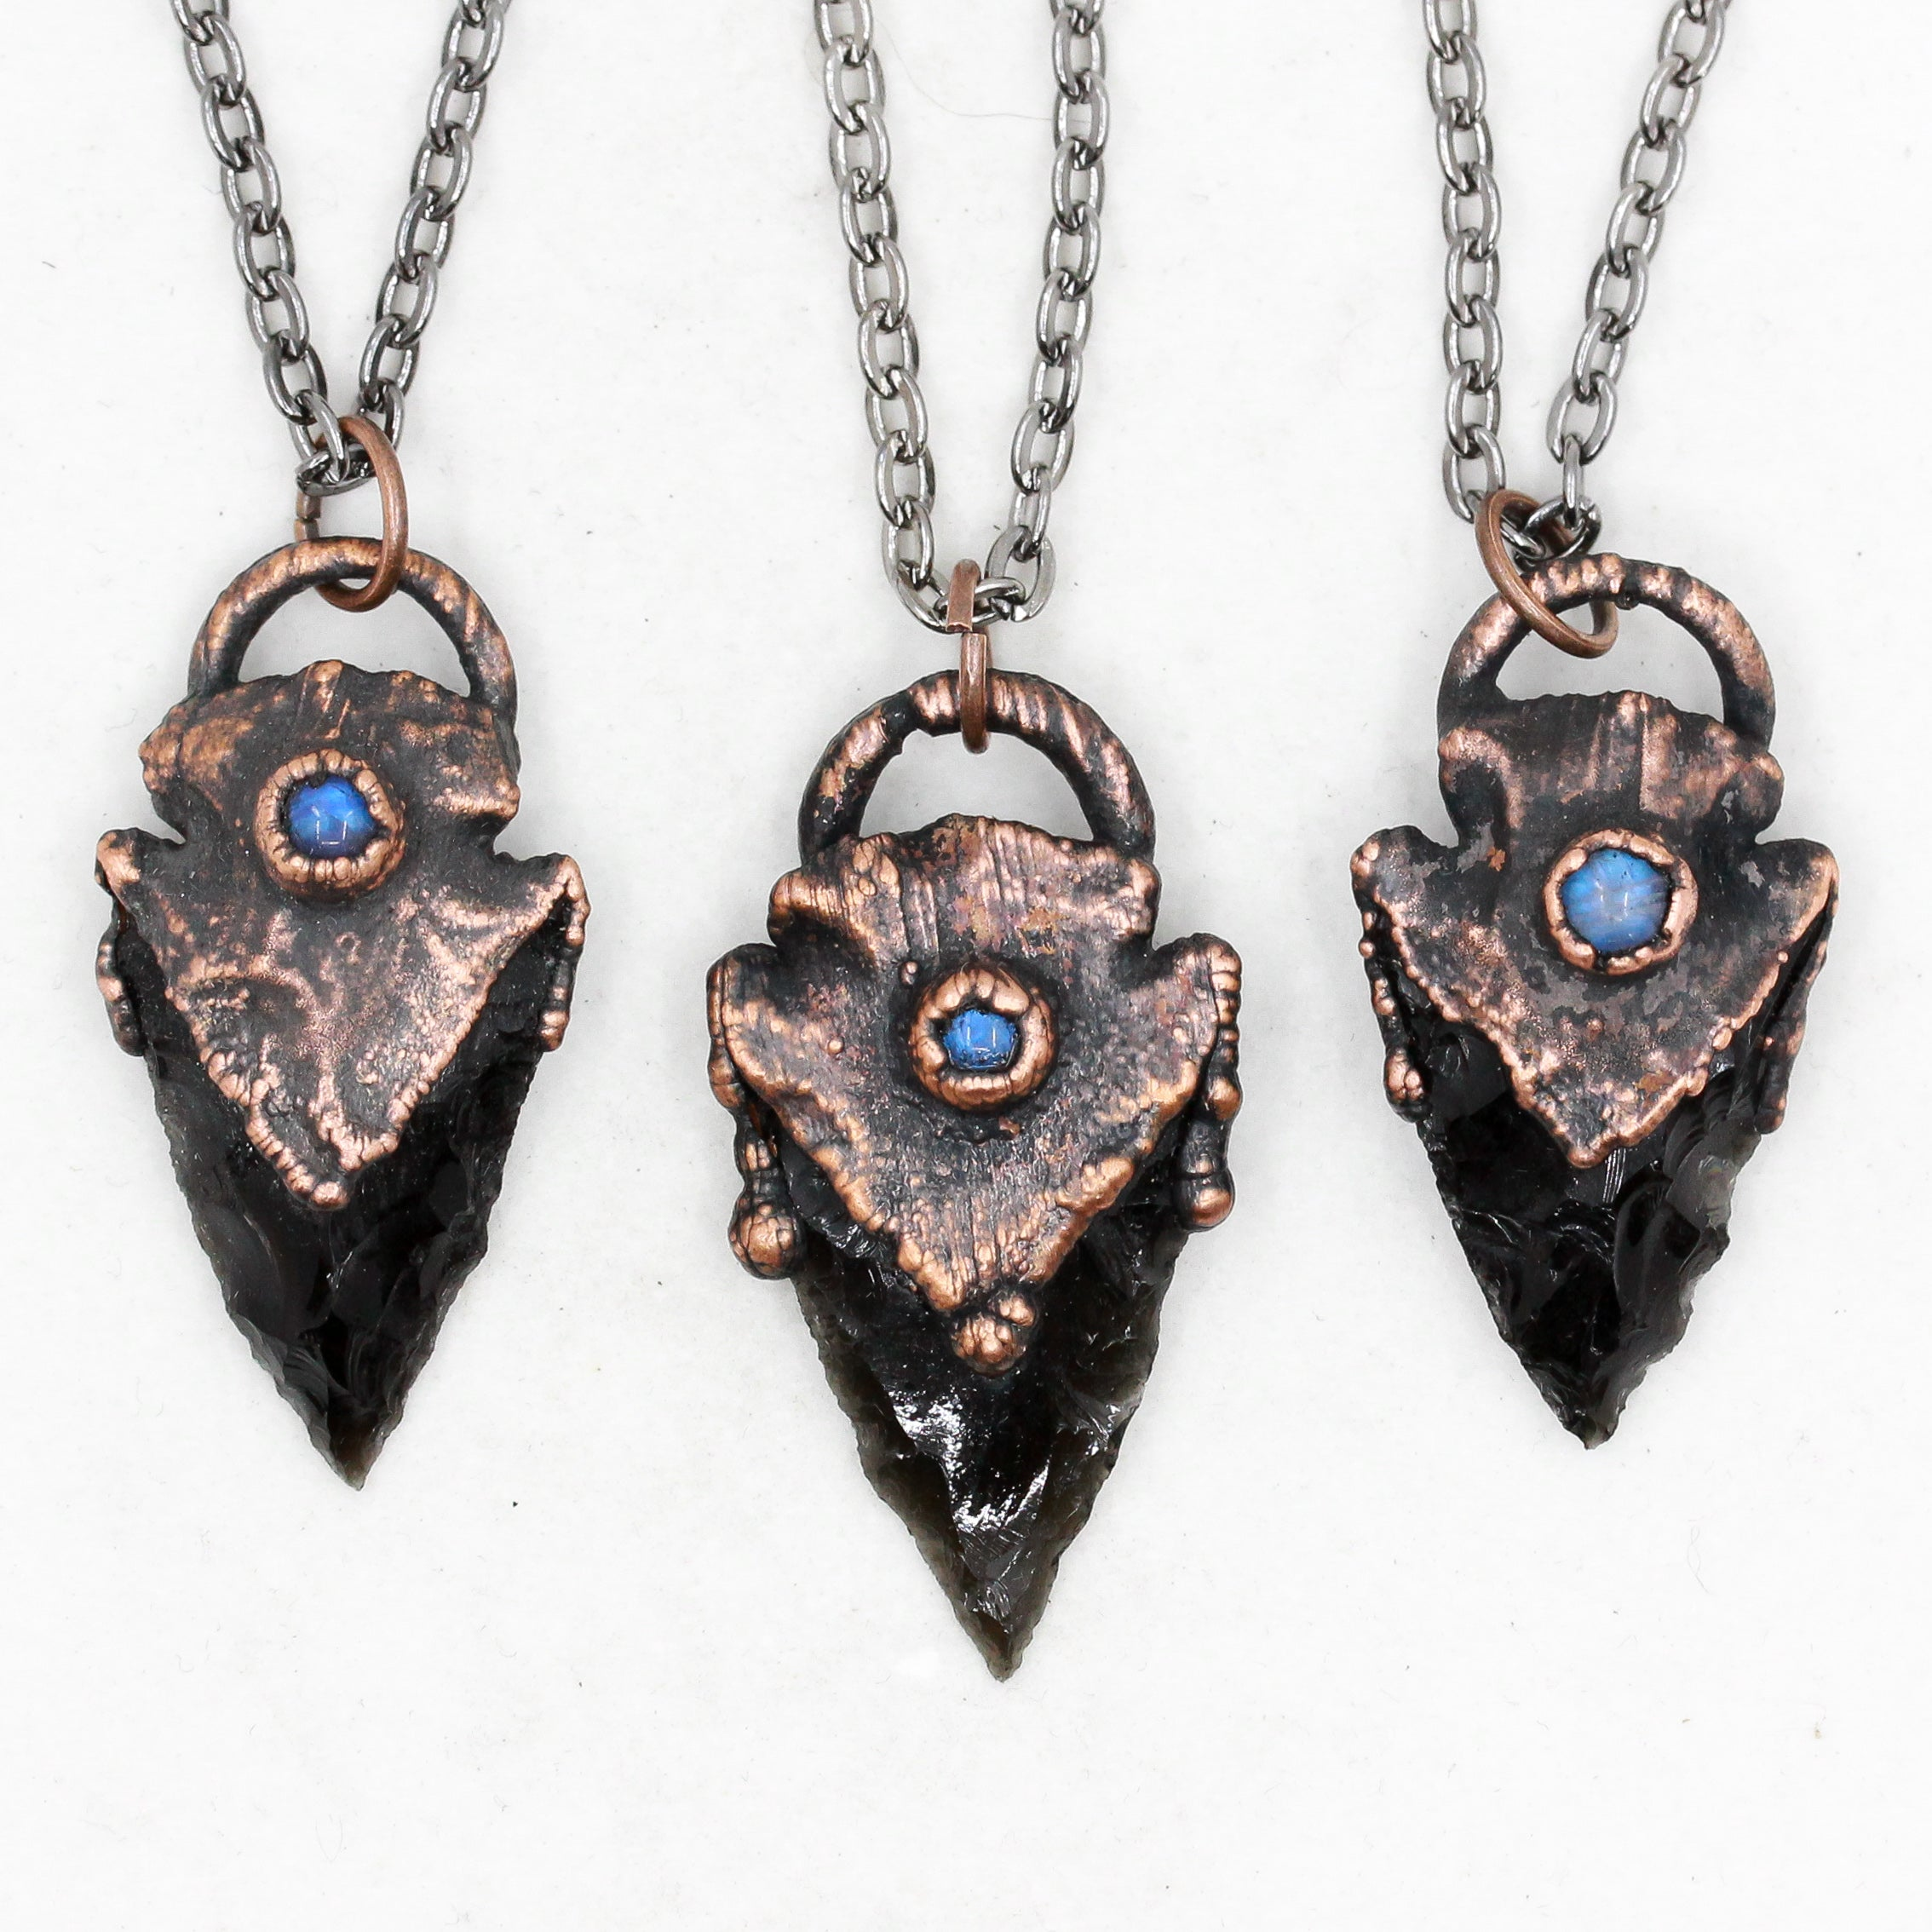 Mini Electroformed Black Obsidian Arrowhead & Moonstone Crystal Necklace